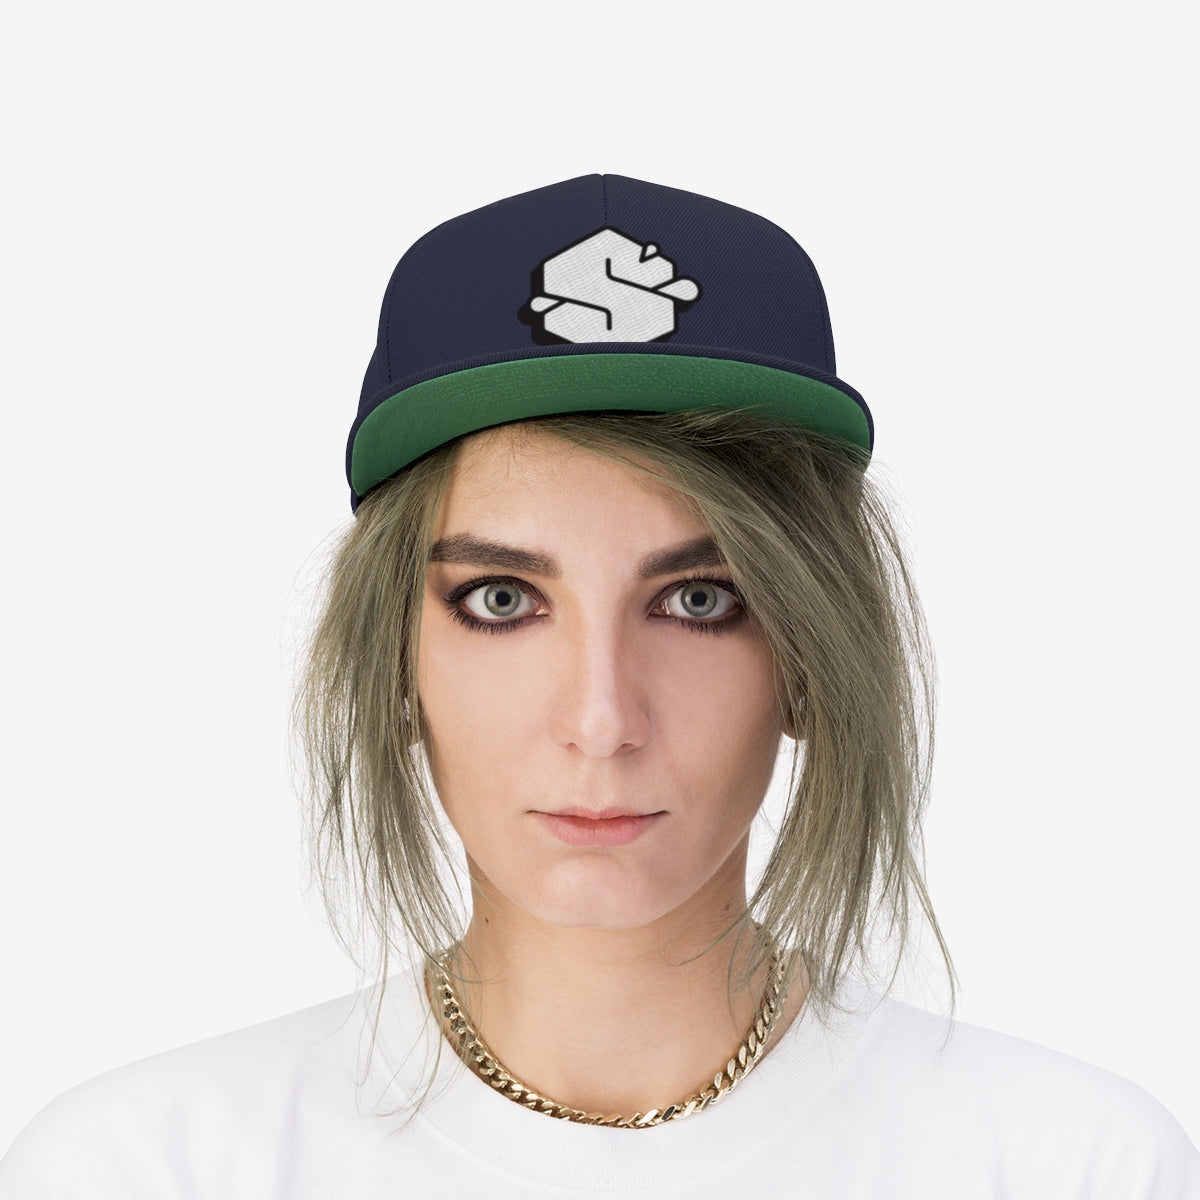 INSIGNIA - That STICCY©© Thing - Unisex Flat Bill Hat